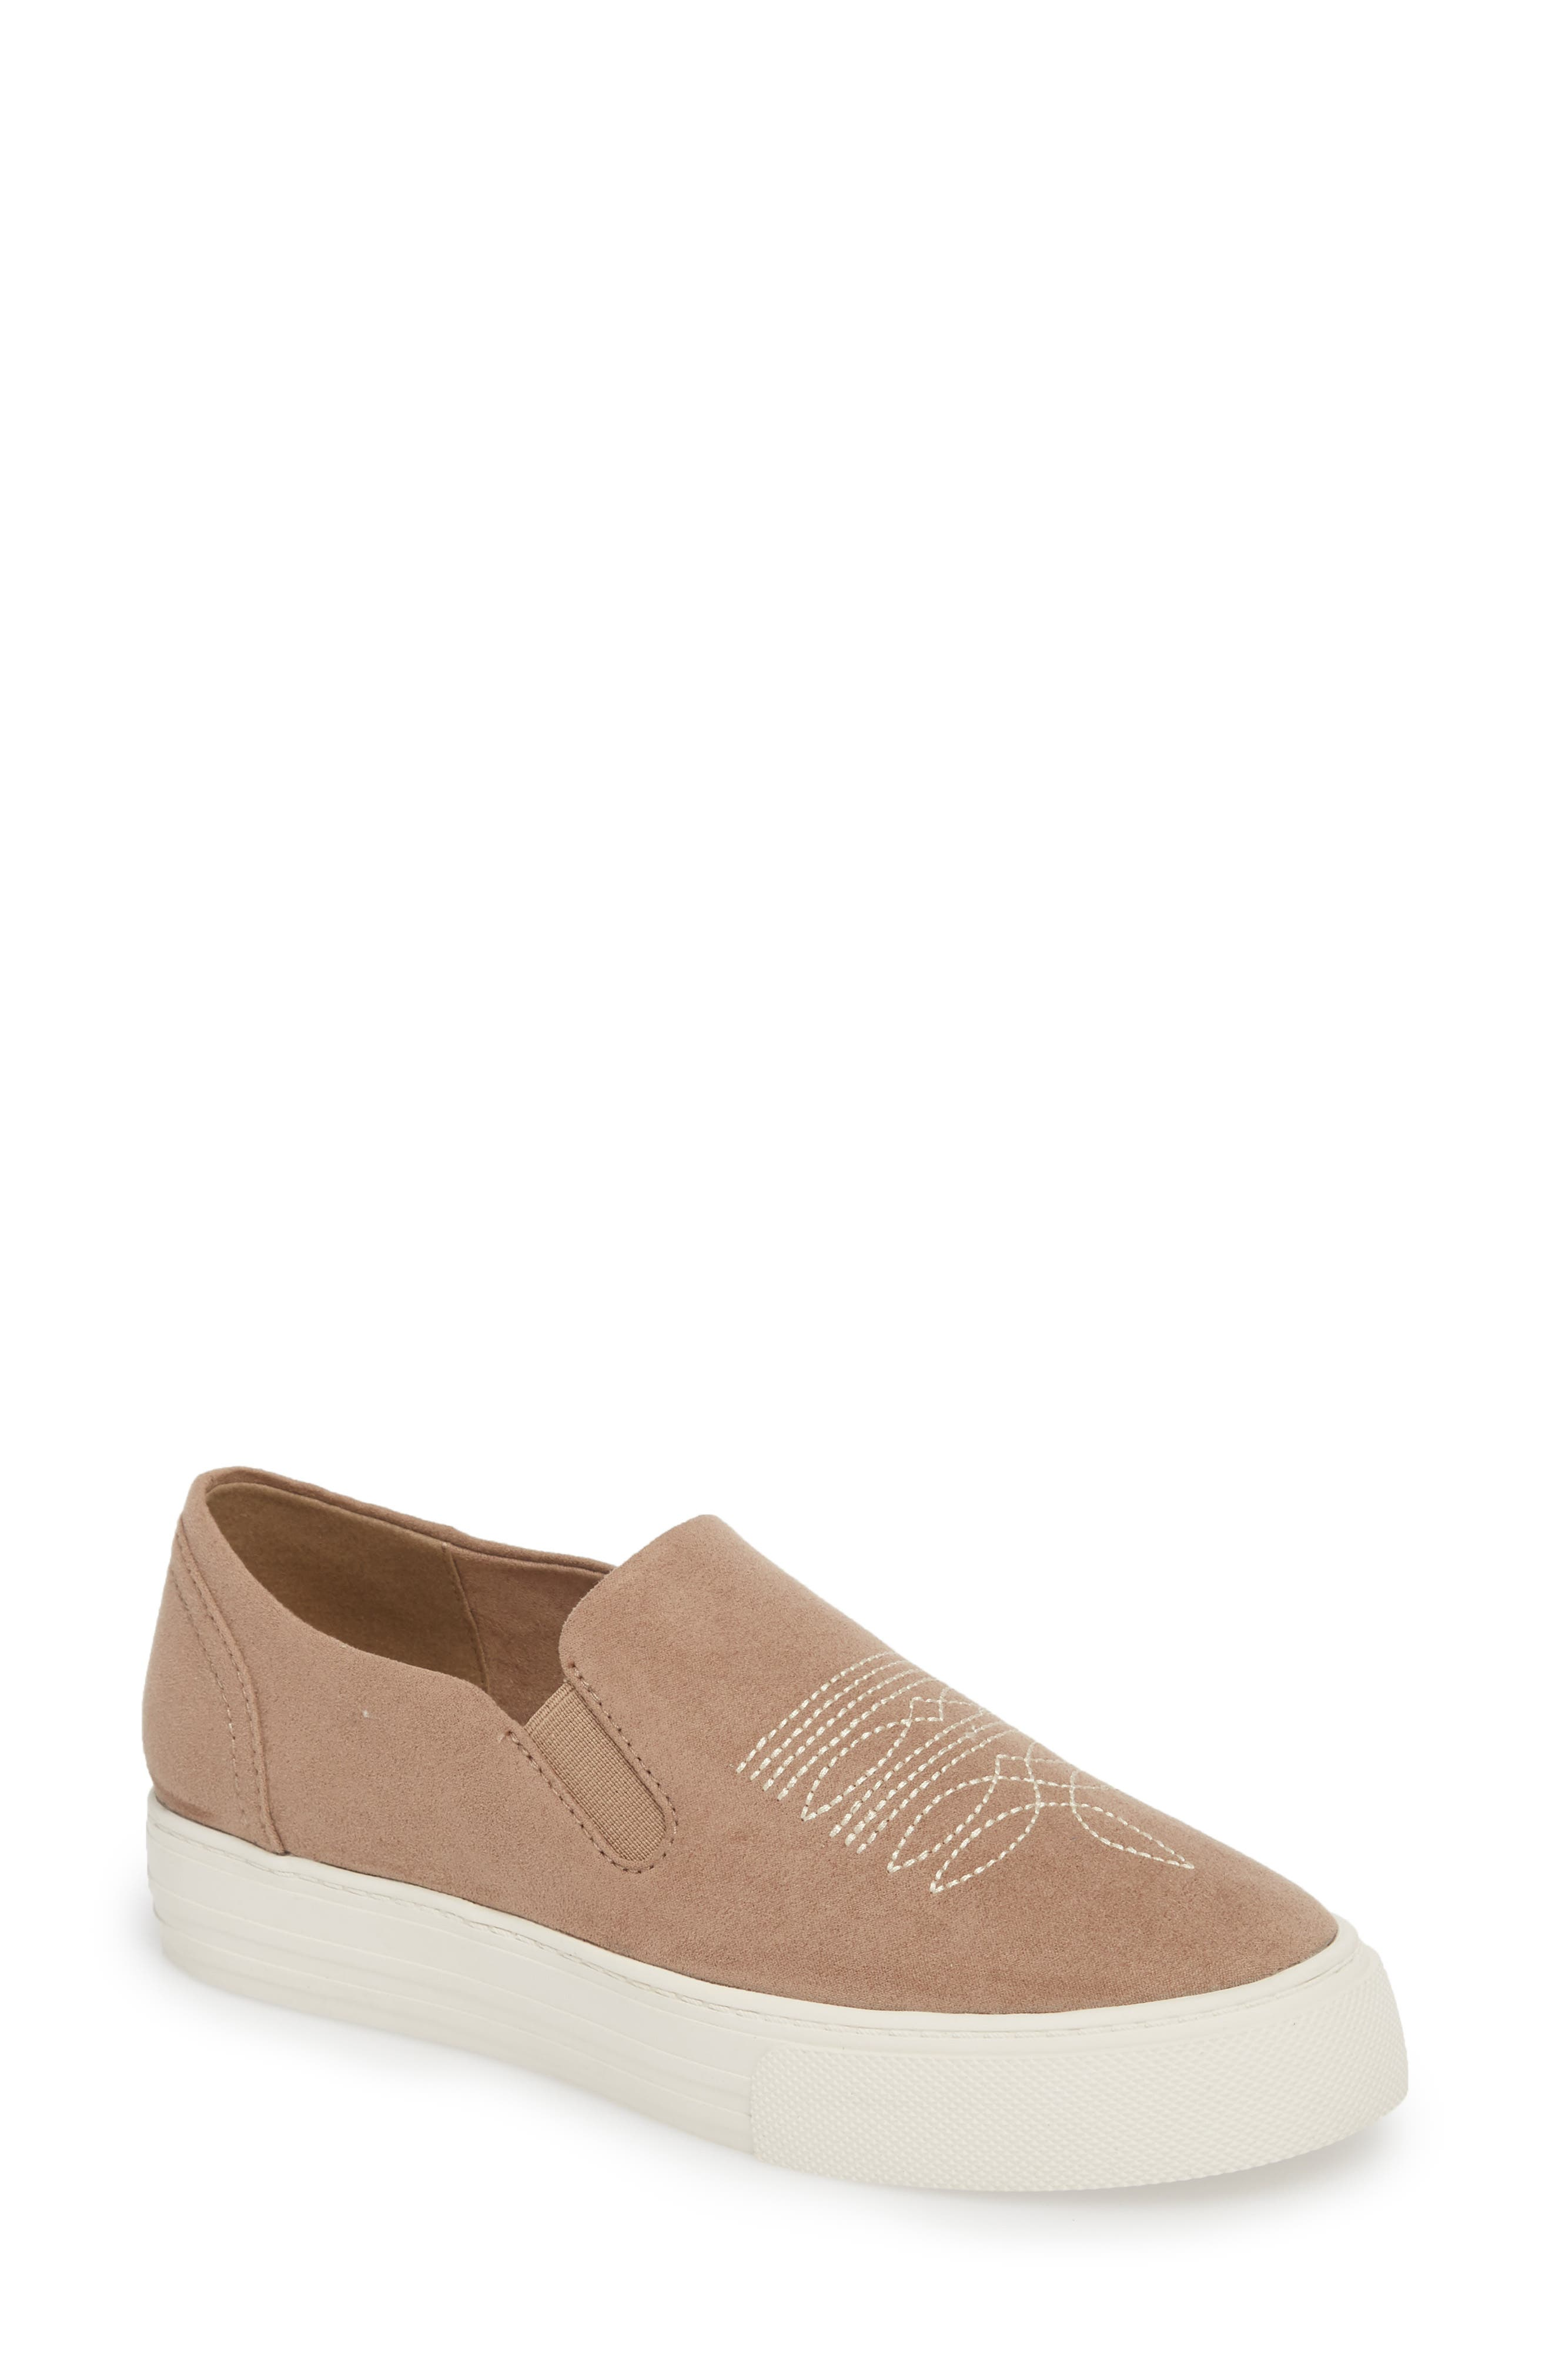 Ariat Unbridled Ace Embroidered Slip-On Sneaker, Beige